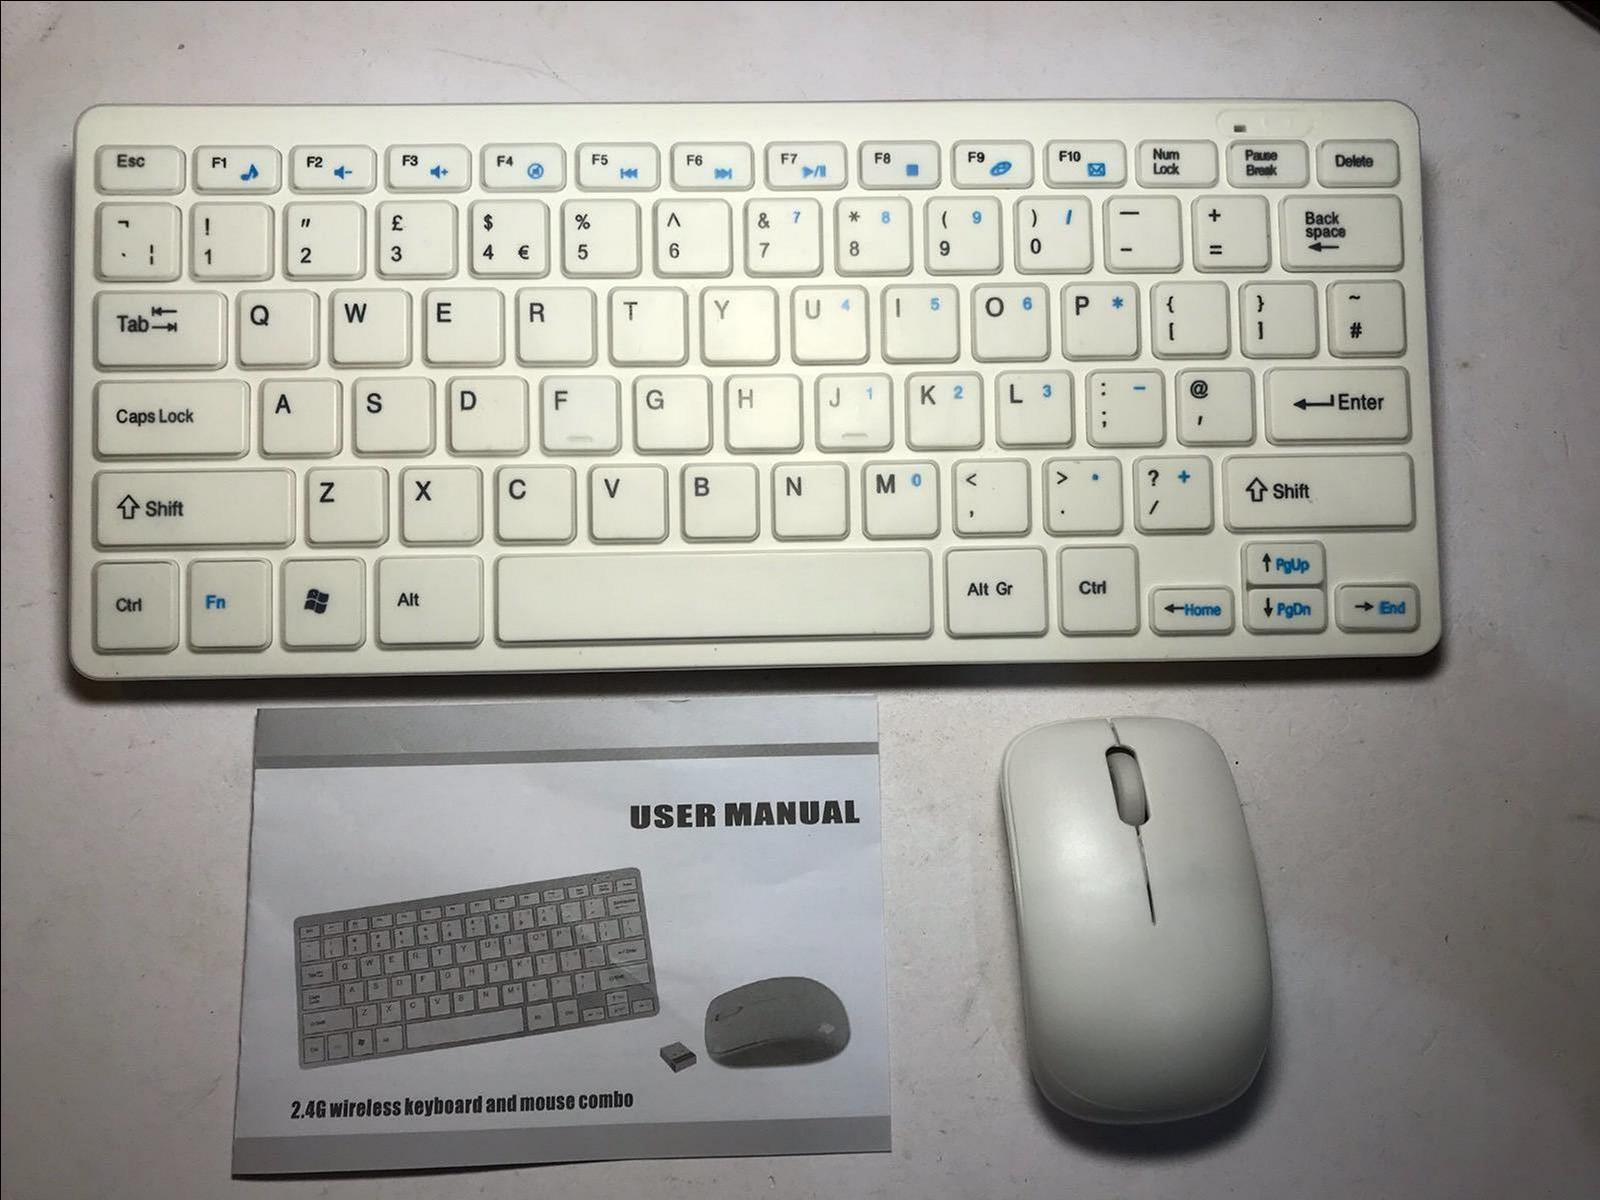 Wireless mini keyboard mouse box set for samsung ue37es550 smart image is loading wireless mini keyboard amp mouse box set for publicscrutiny Gallery